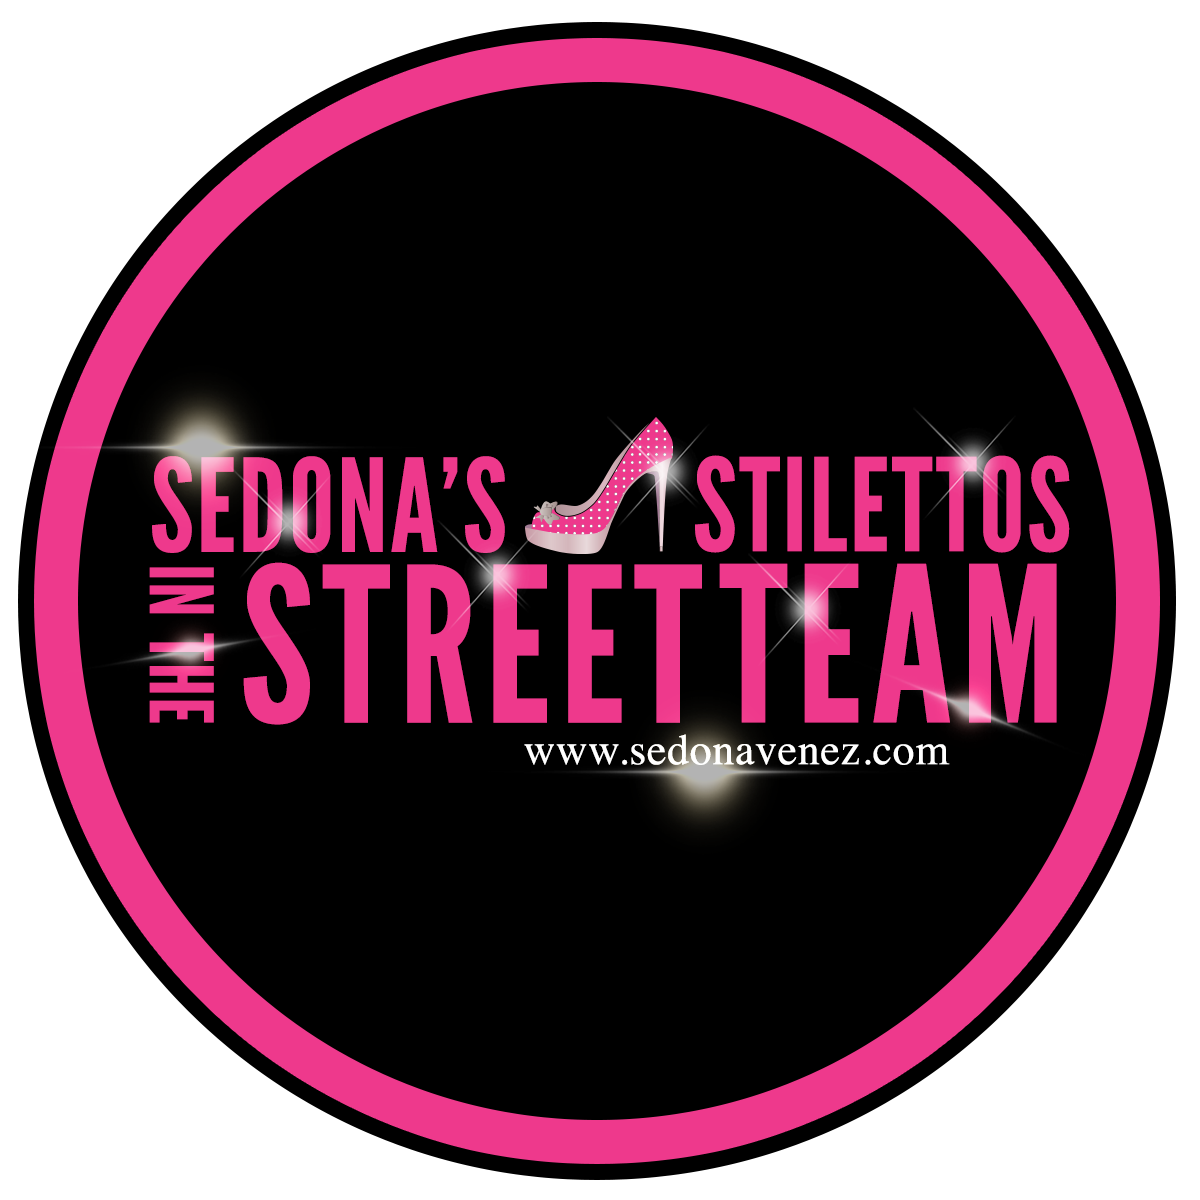 Street Team Monthly Contest